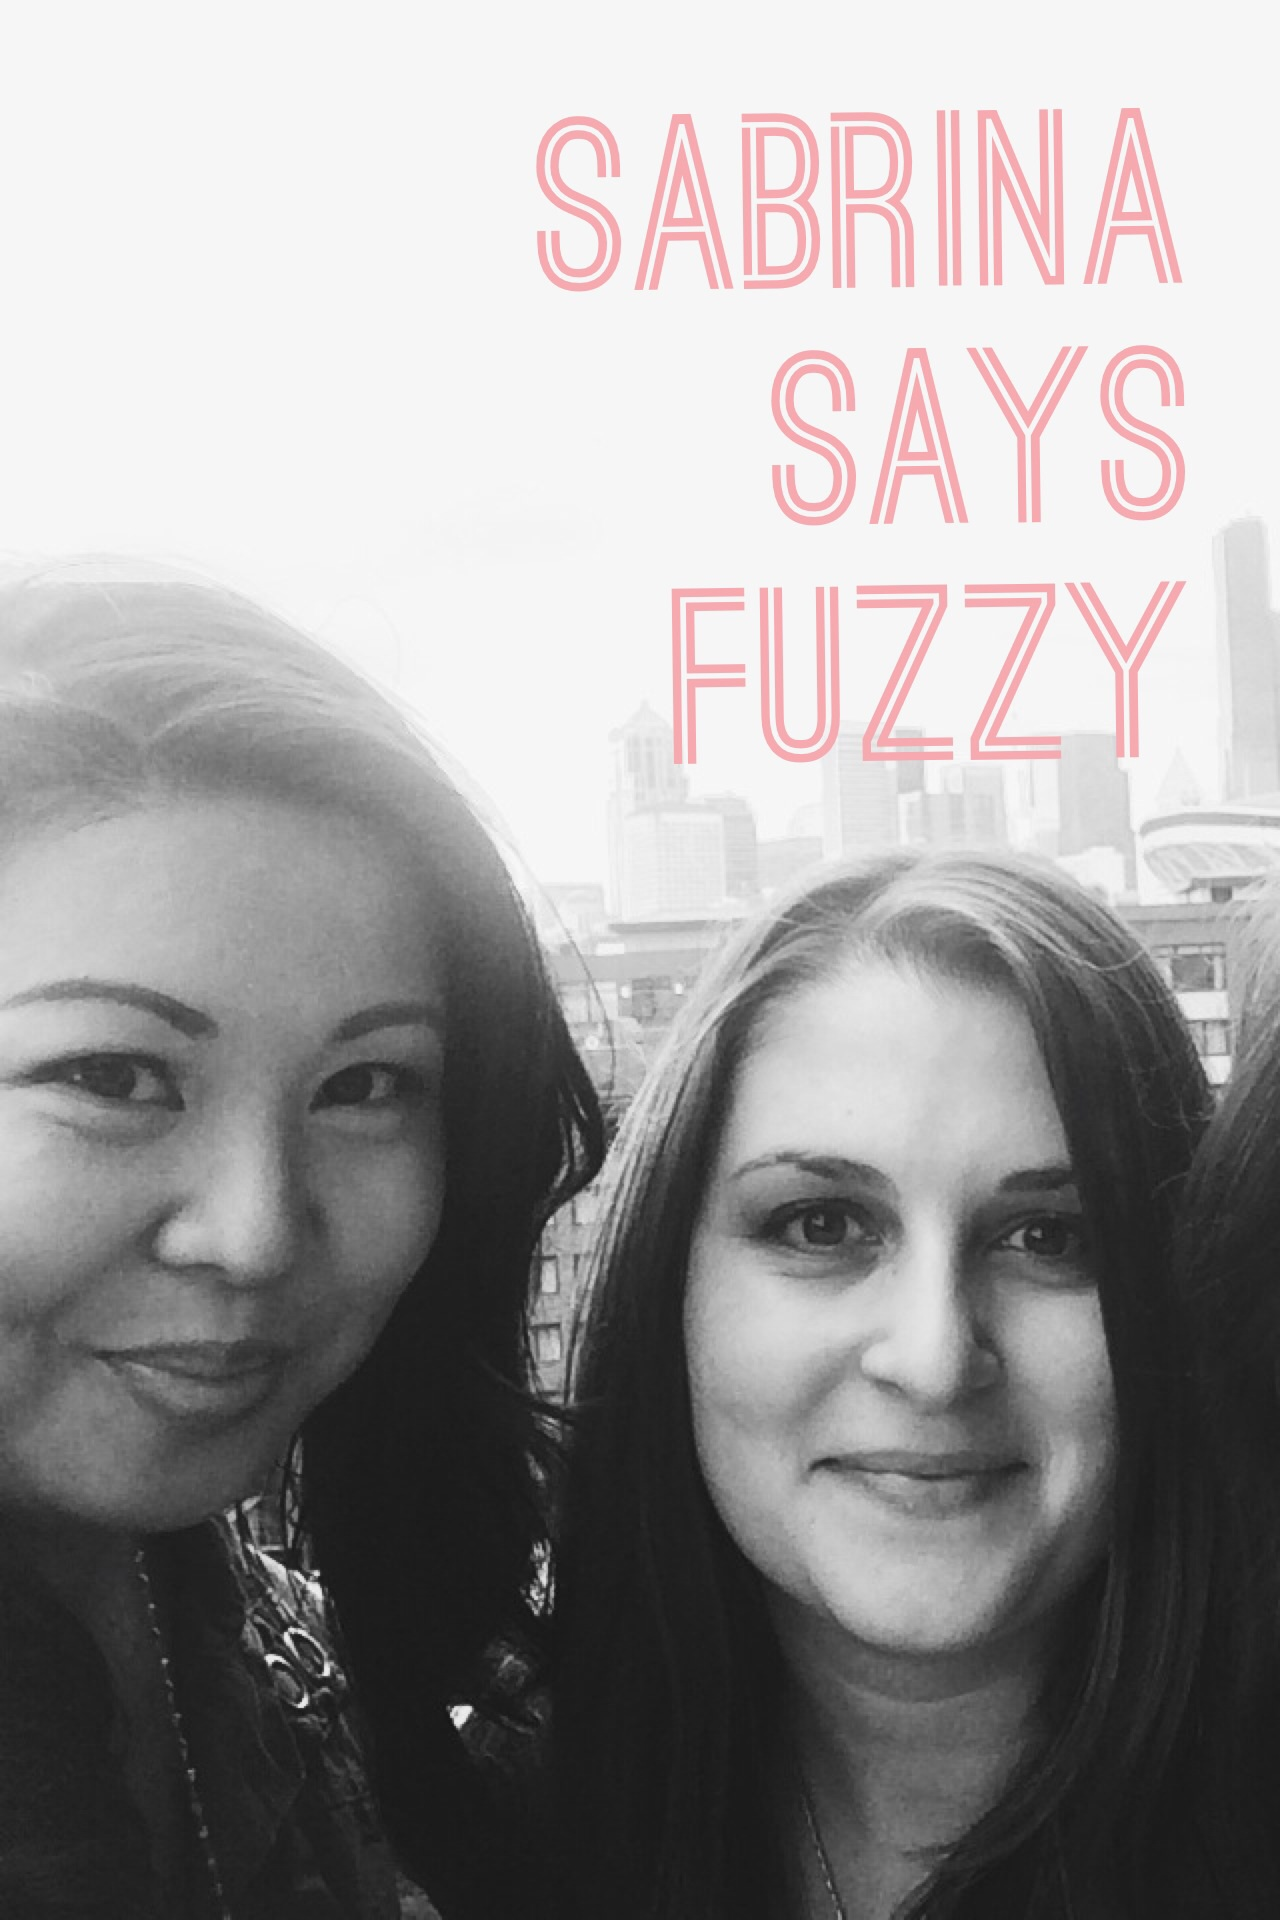 Week in Pictures {fuzzy}